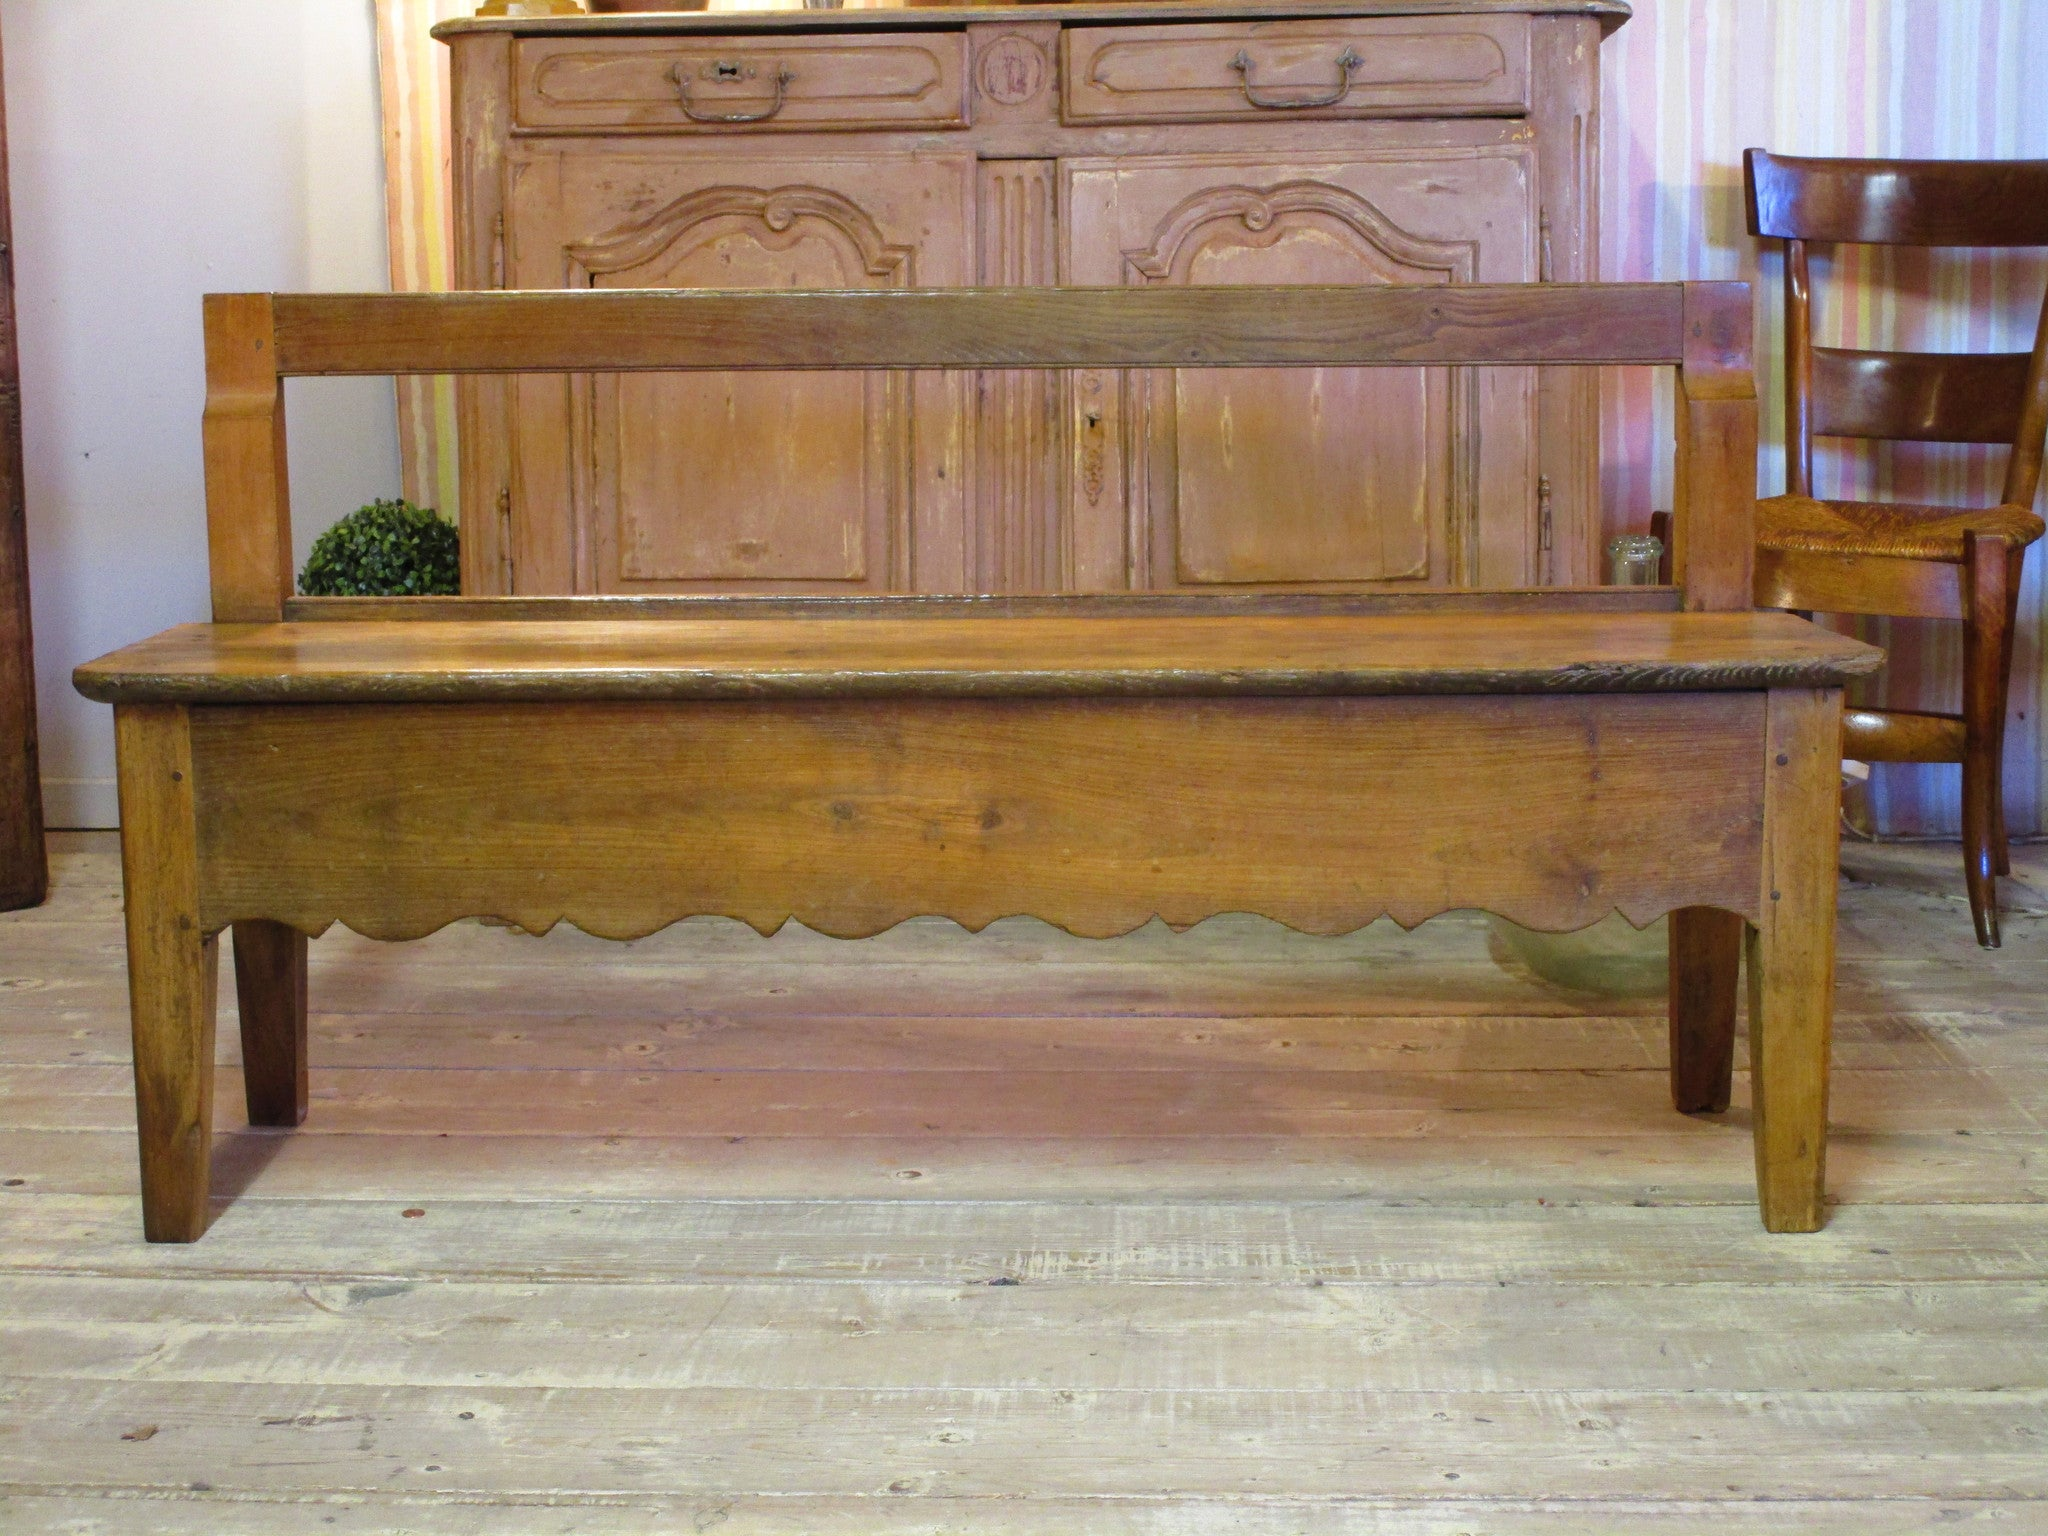 19th century french oak and cherry wood bench seat modern farmhouse